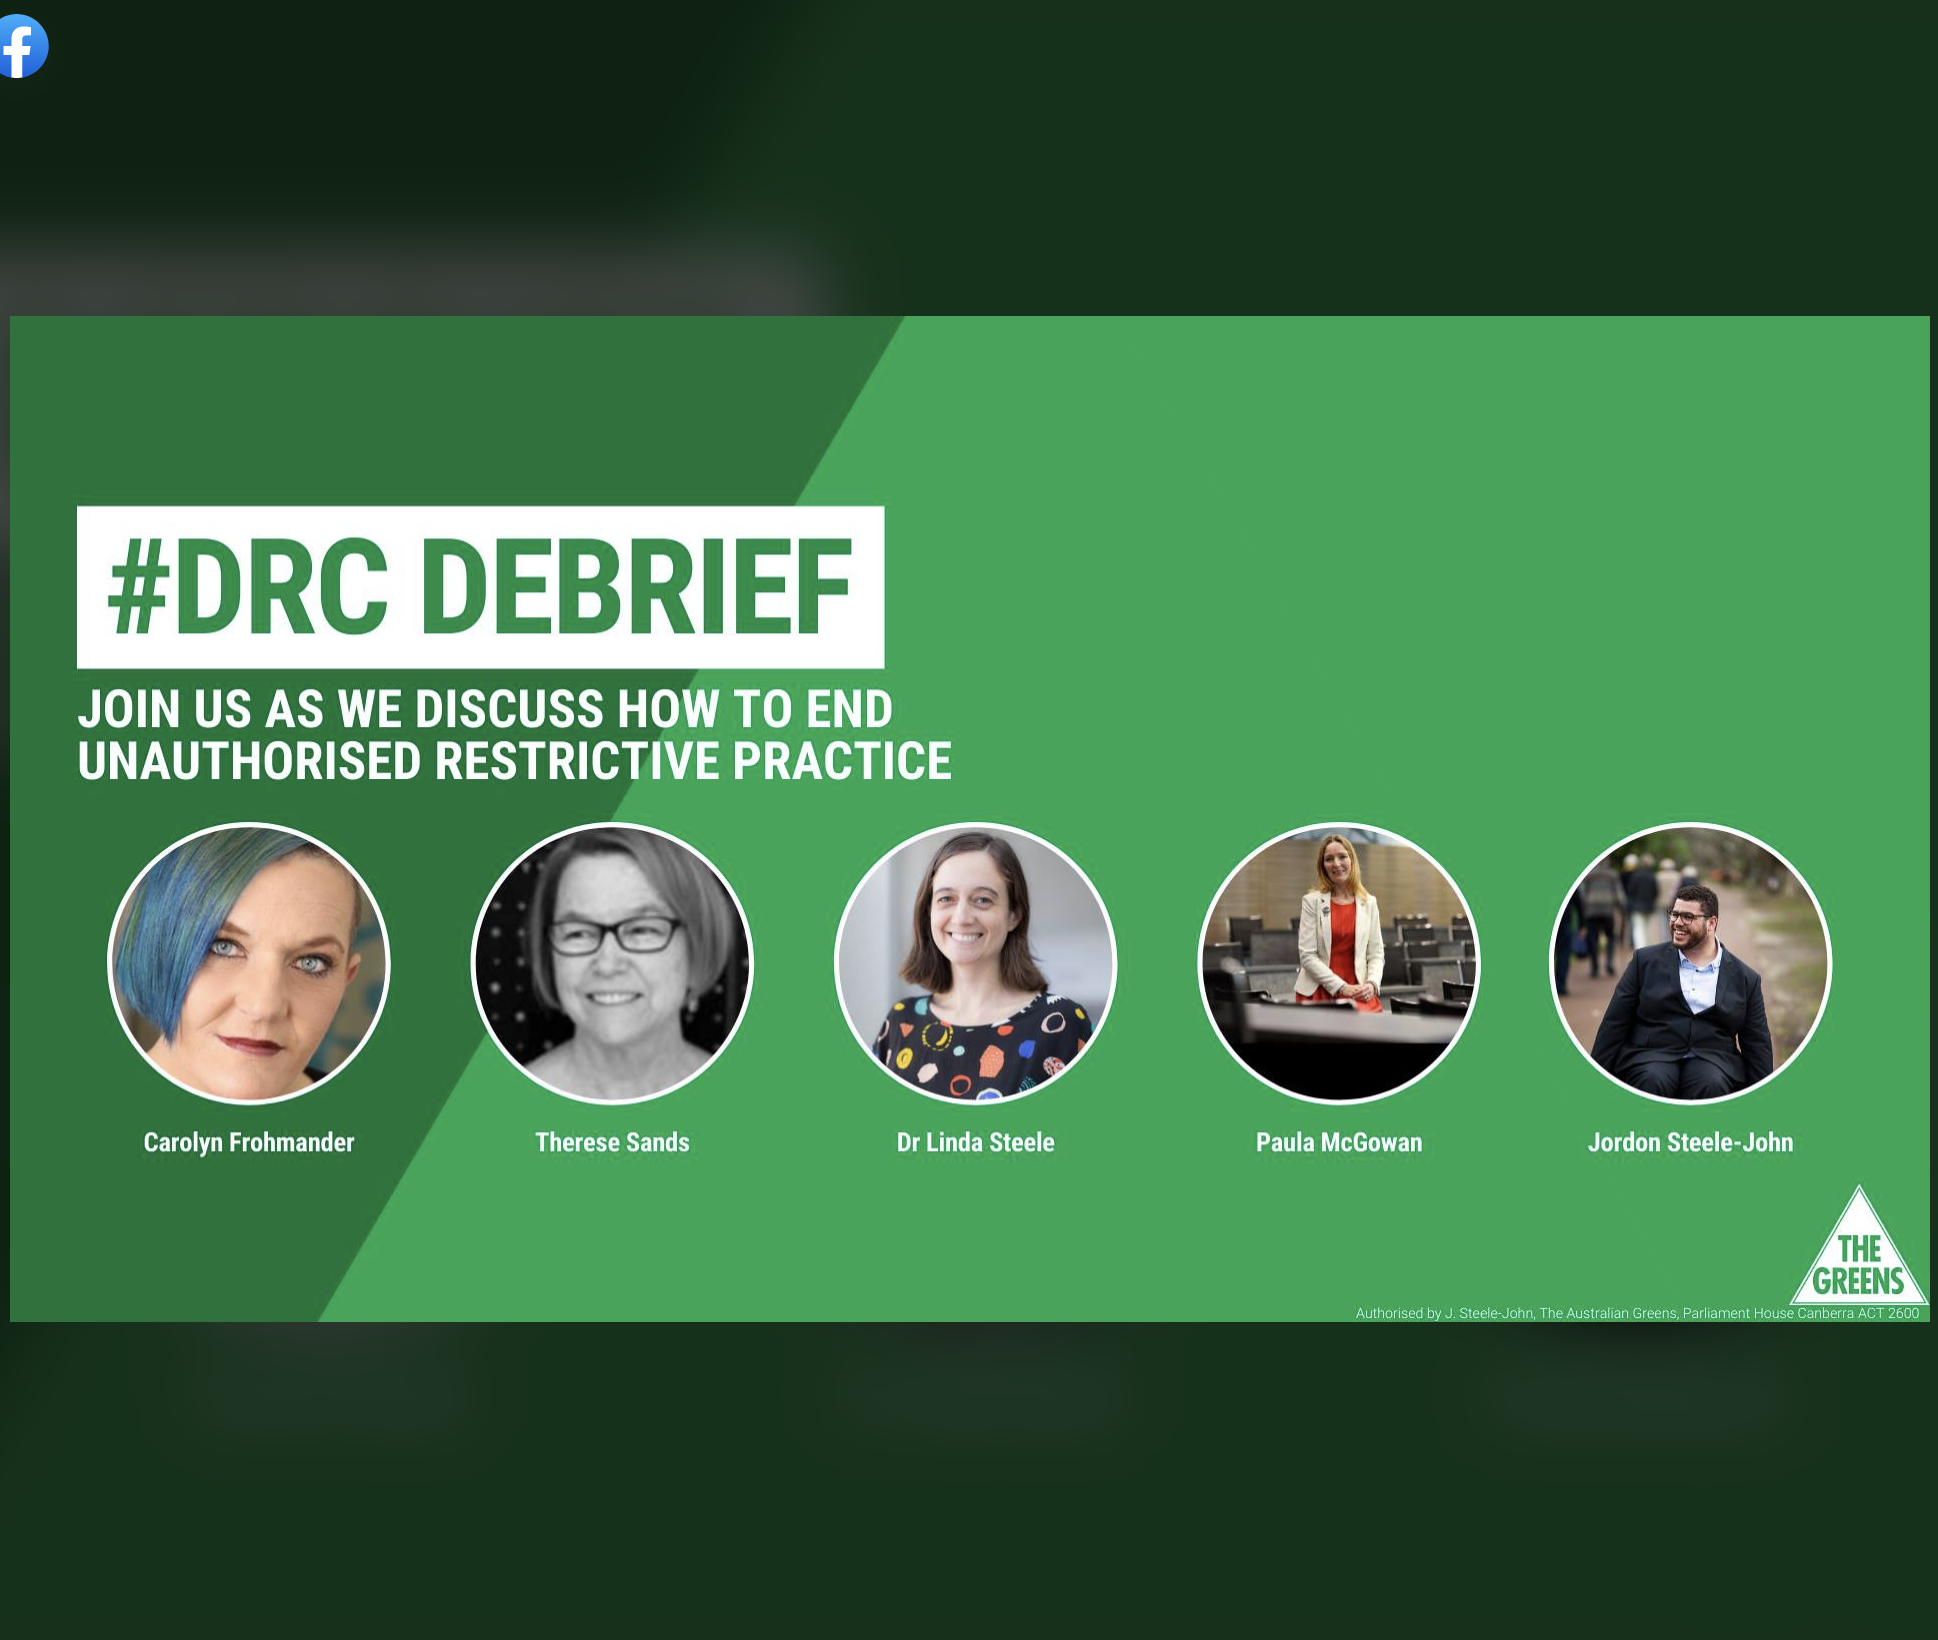 Green background, Heading: #DRC DEBRIEF, join us as we discuss how to end unauthorised restrictive practice. Photos and names of the panelists and The Greens Party logo.